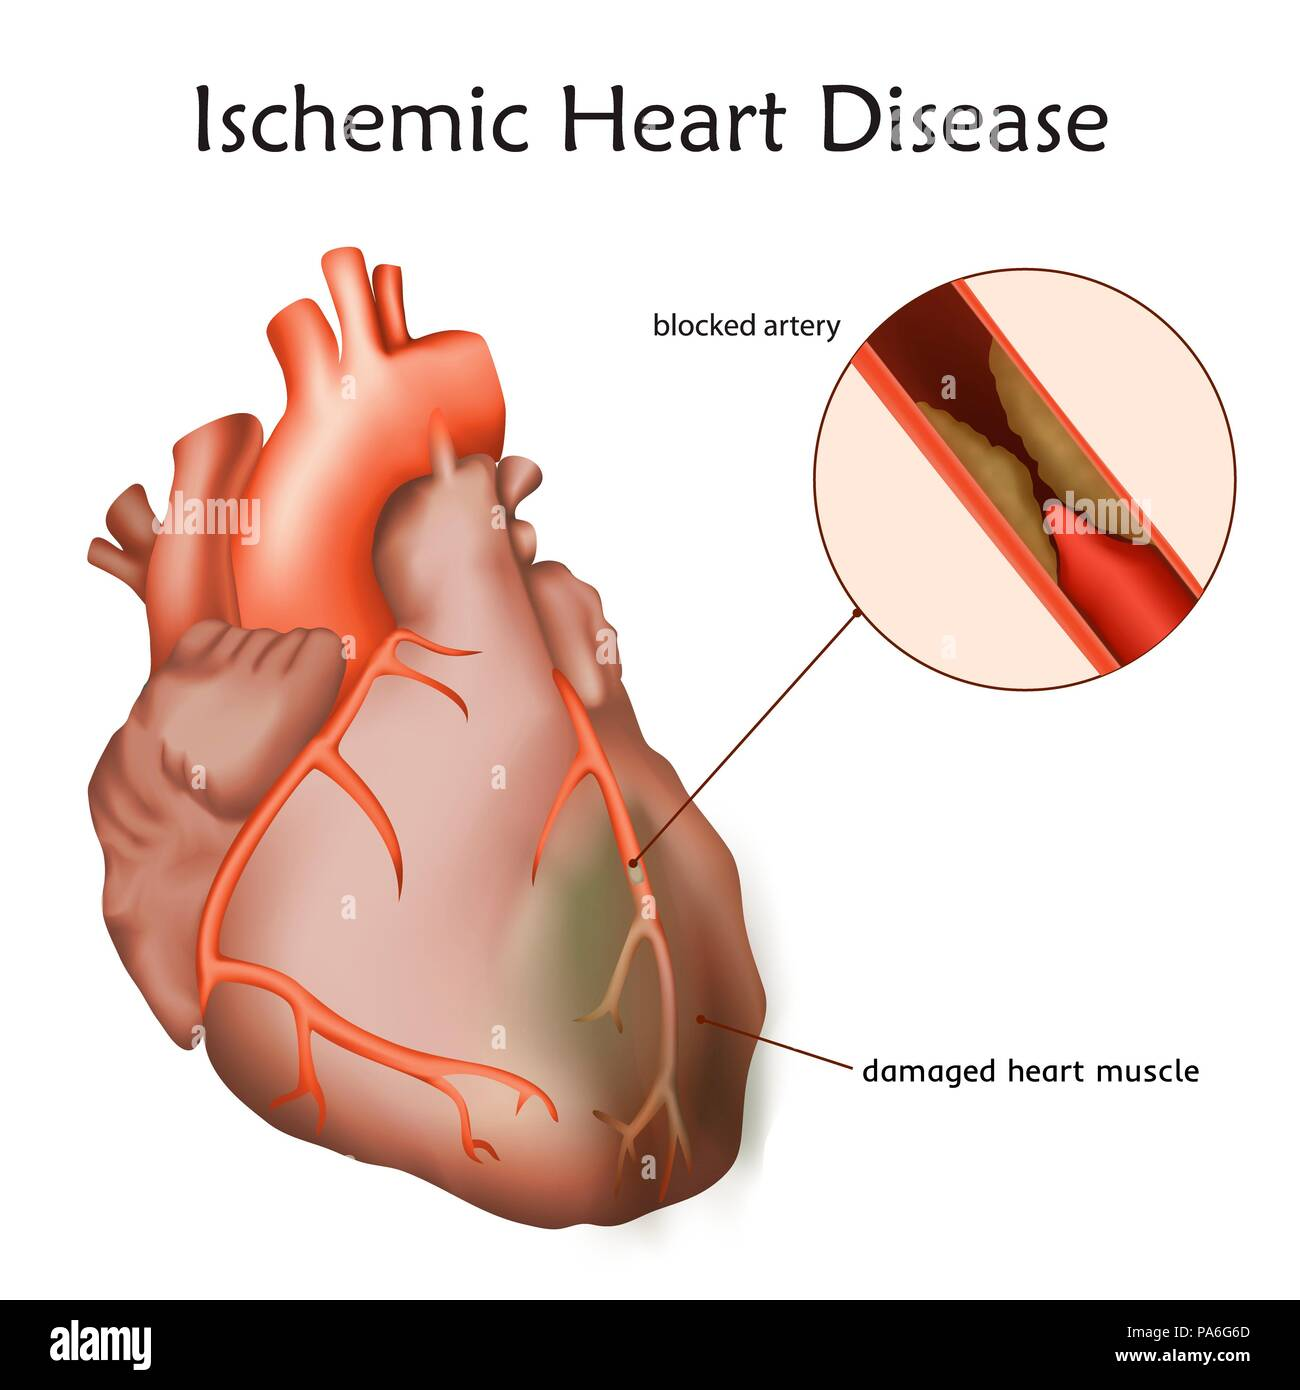 Ischemic heart disease, illustration. A blocked coronary artery has led to heart muscle damage. - Stock Image